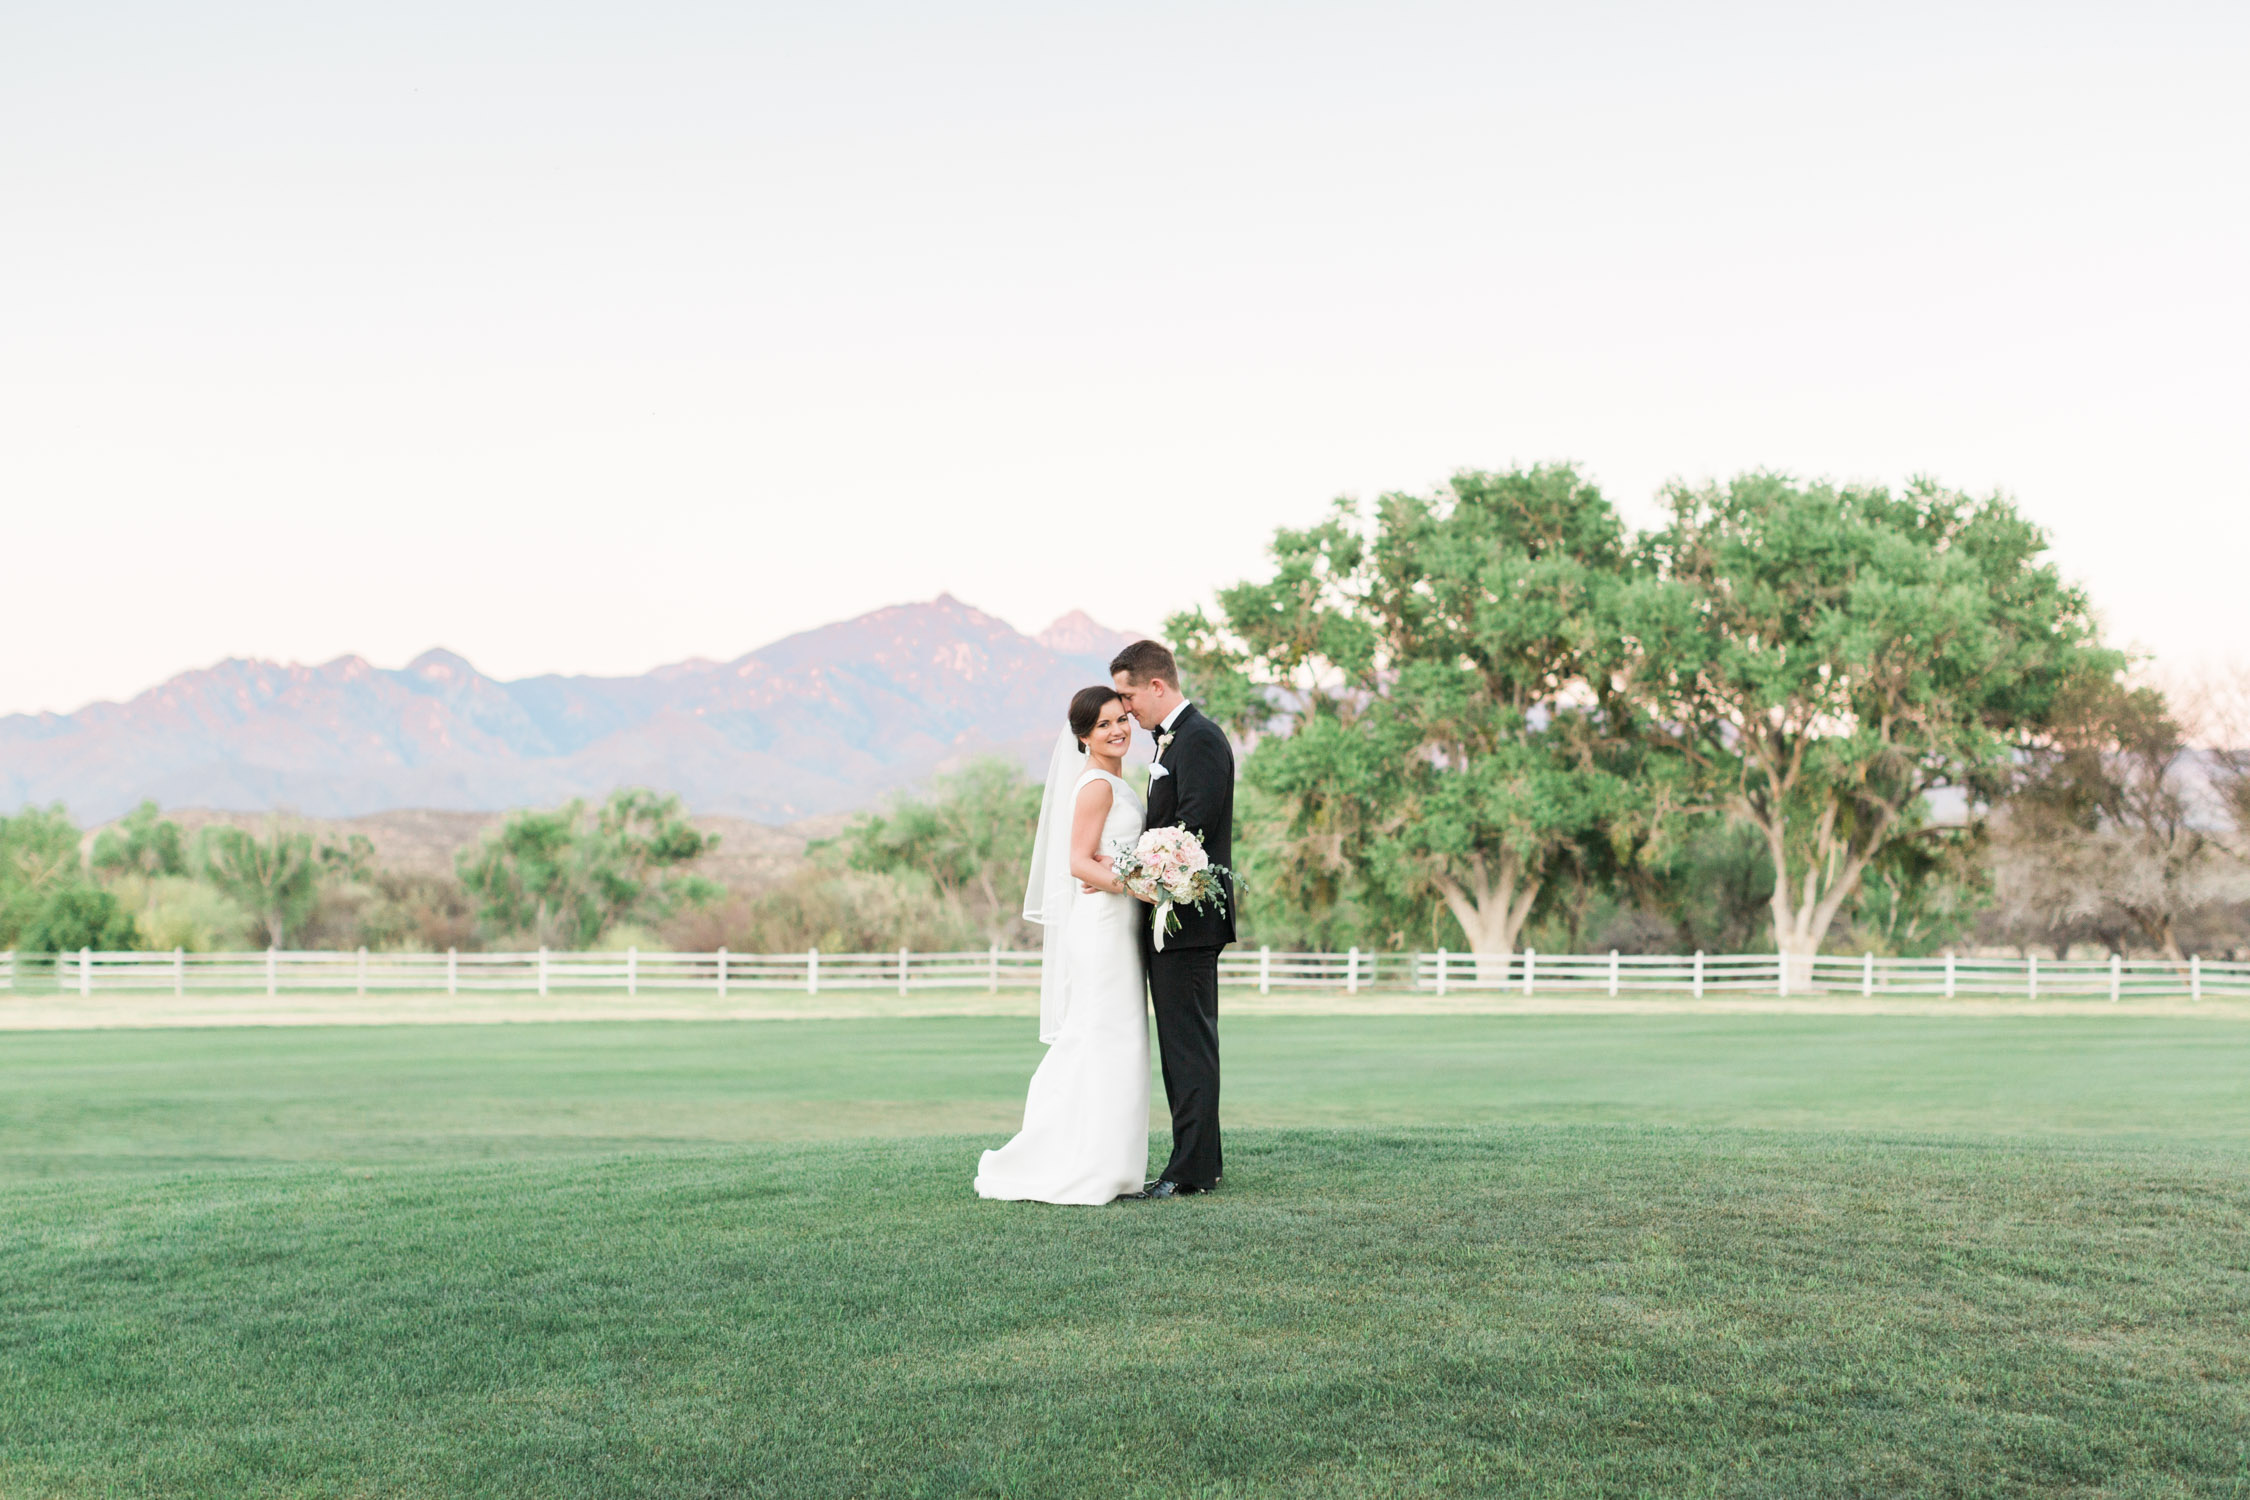 Stunning bride and groom captured by trendy Tucson wedding photographers, Betsy & John